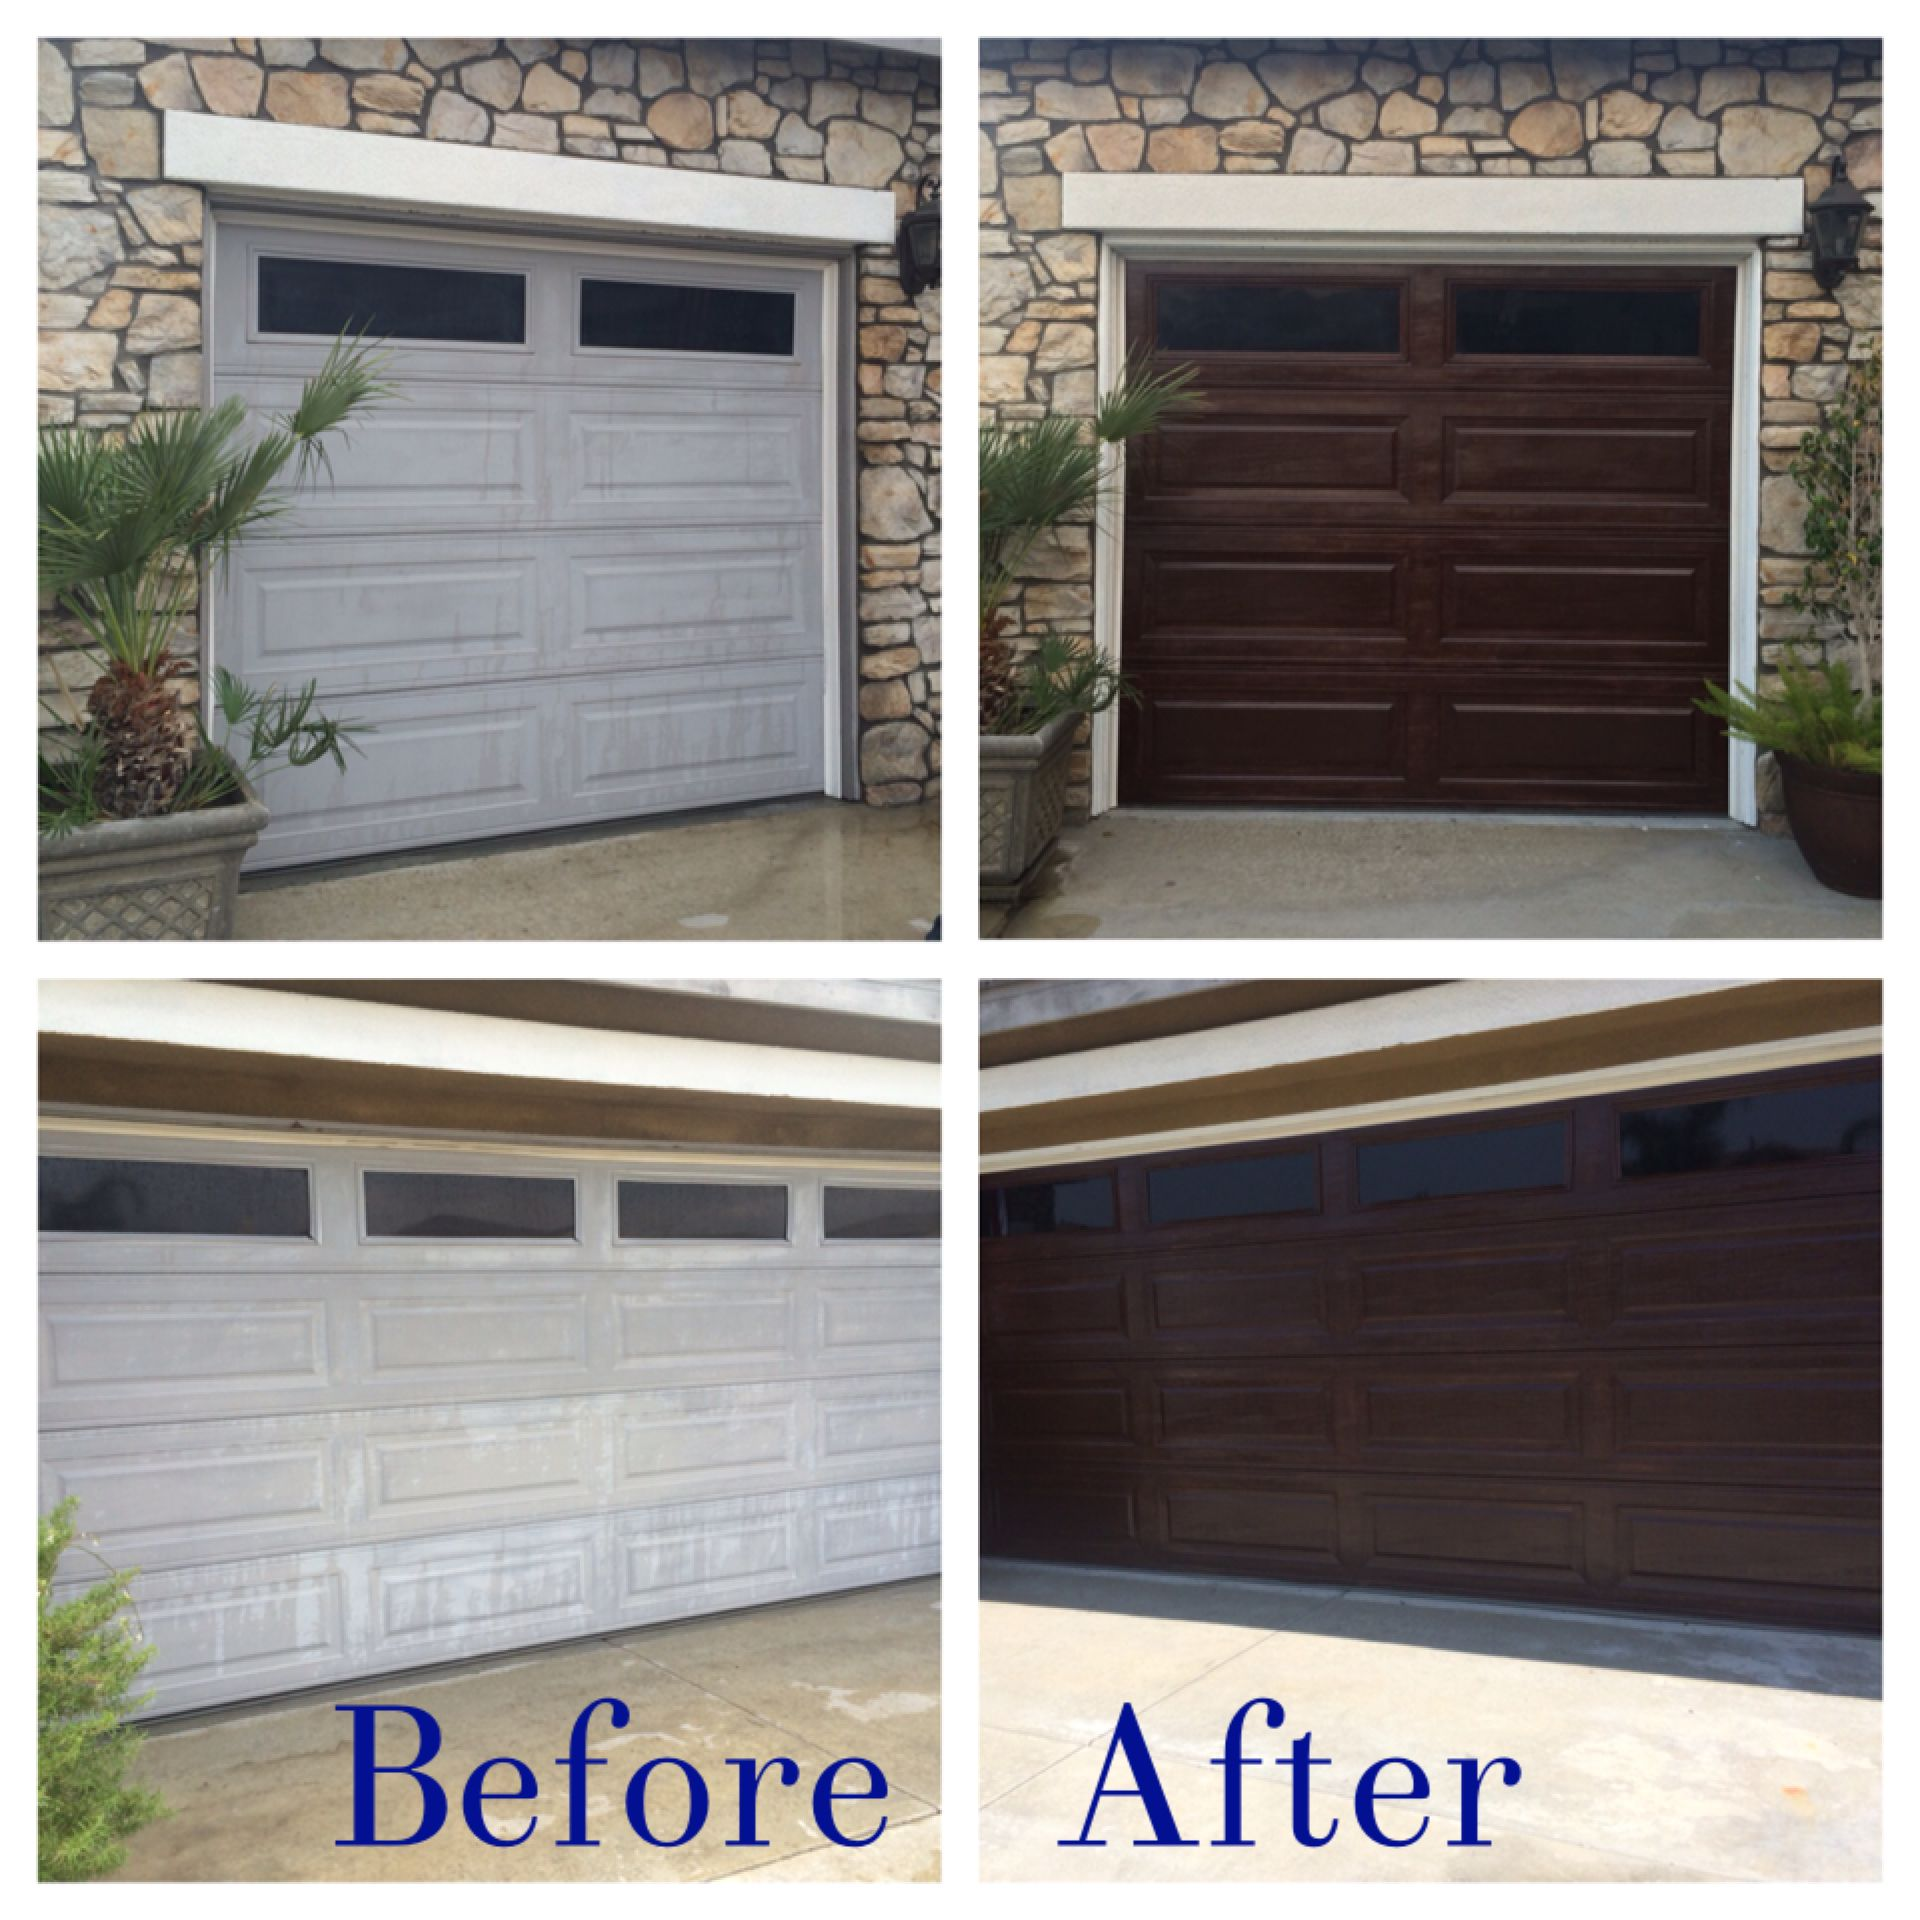 Minwax Charcoal Grey Diy Garage Door Makeover Using Minwax Gel Stain In Hickory Home